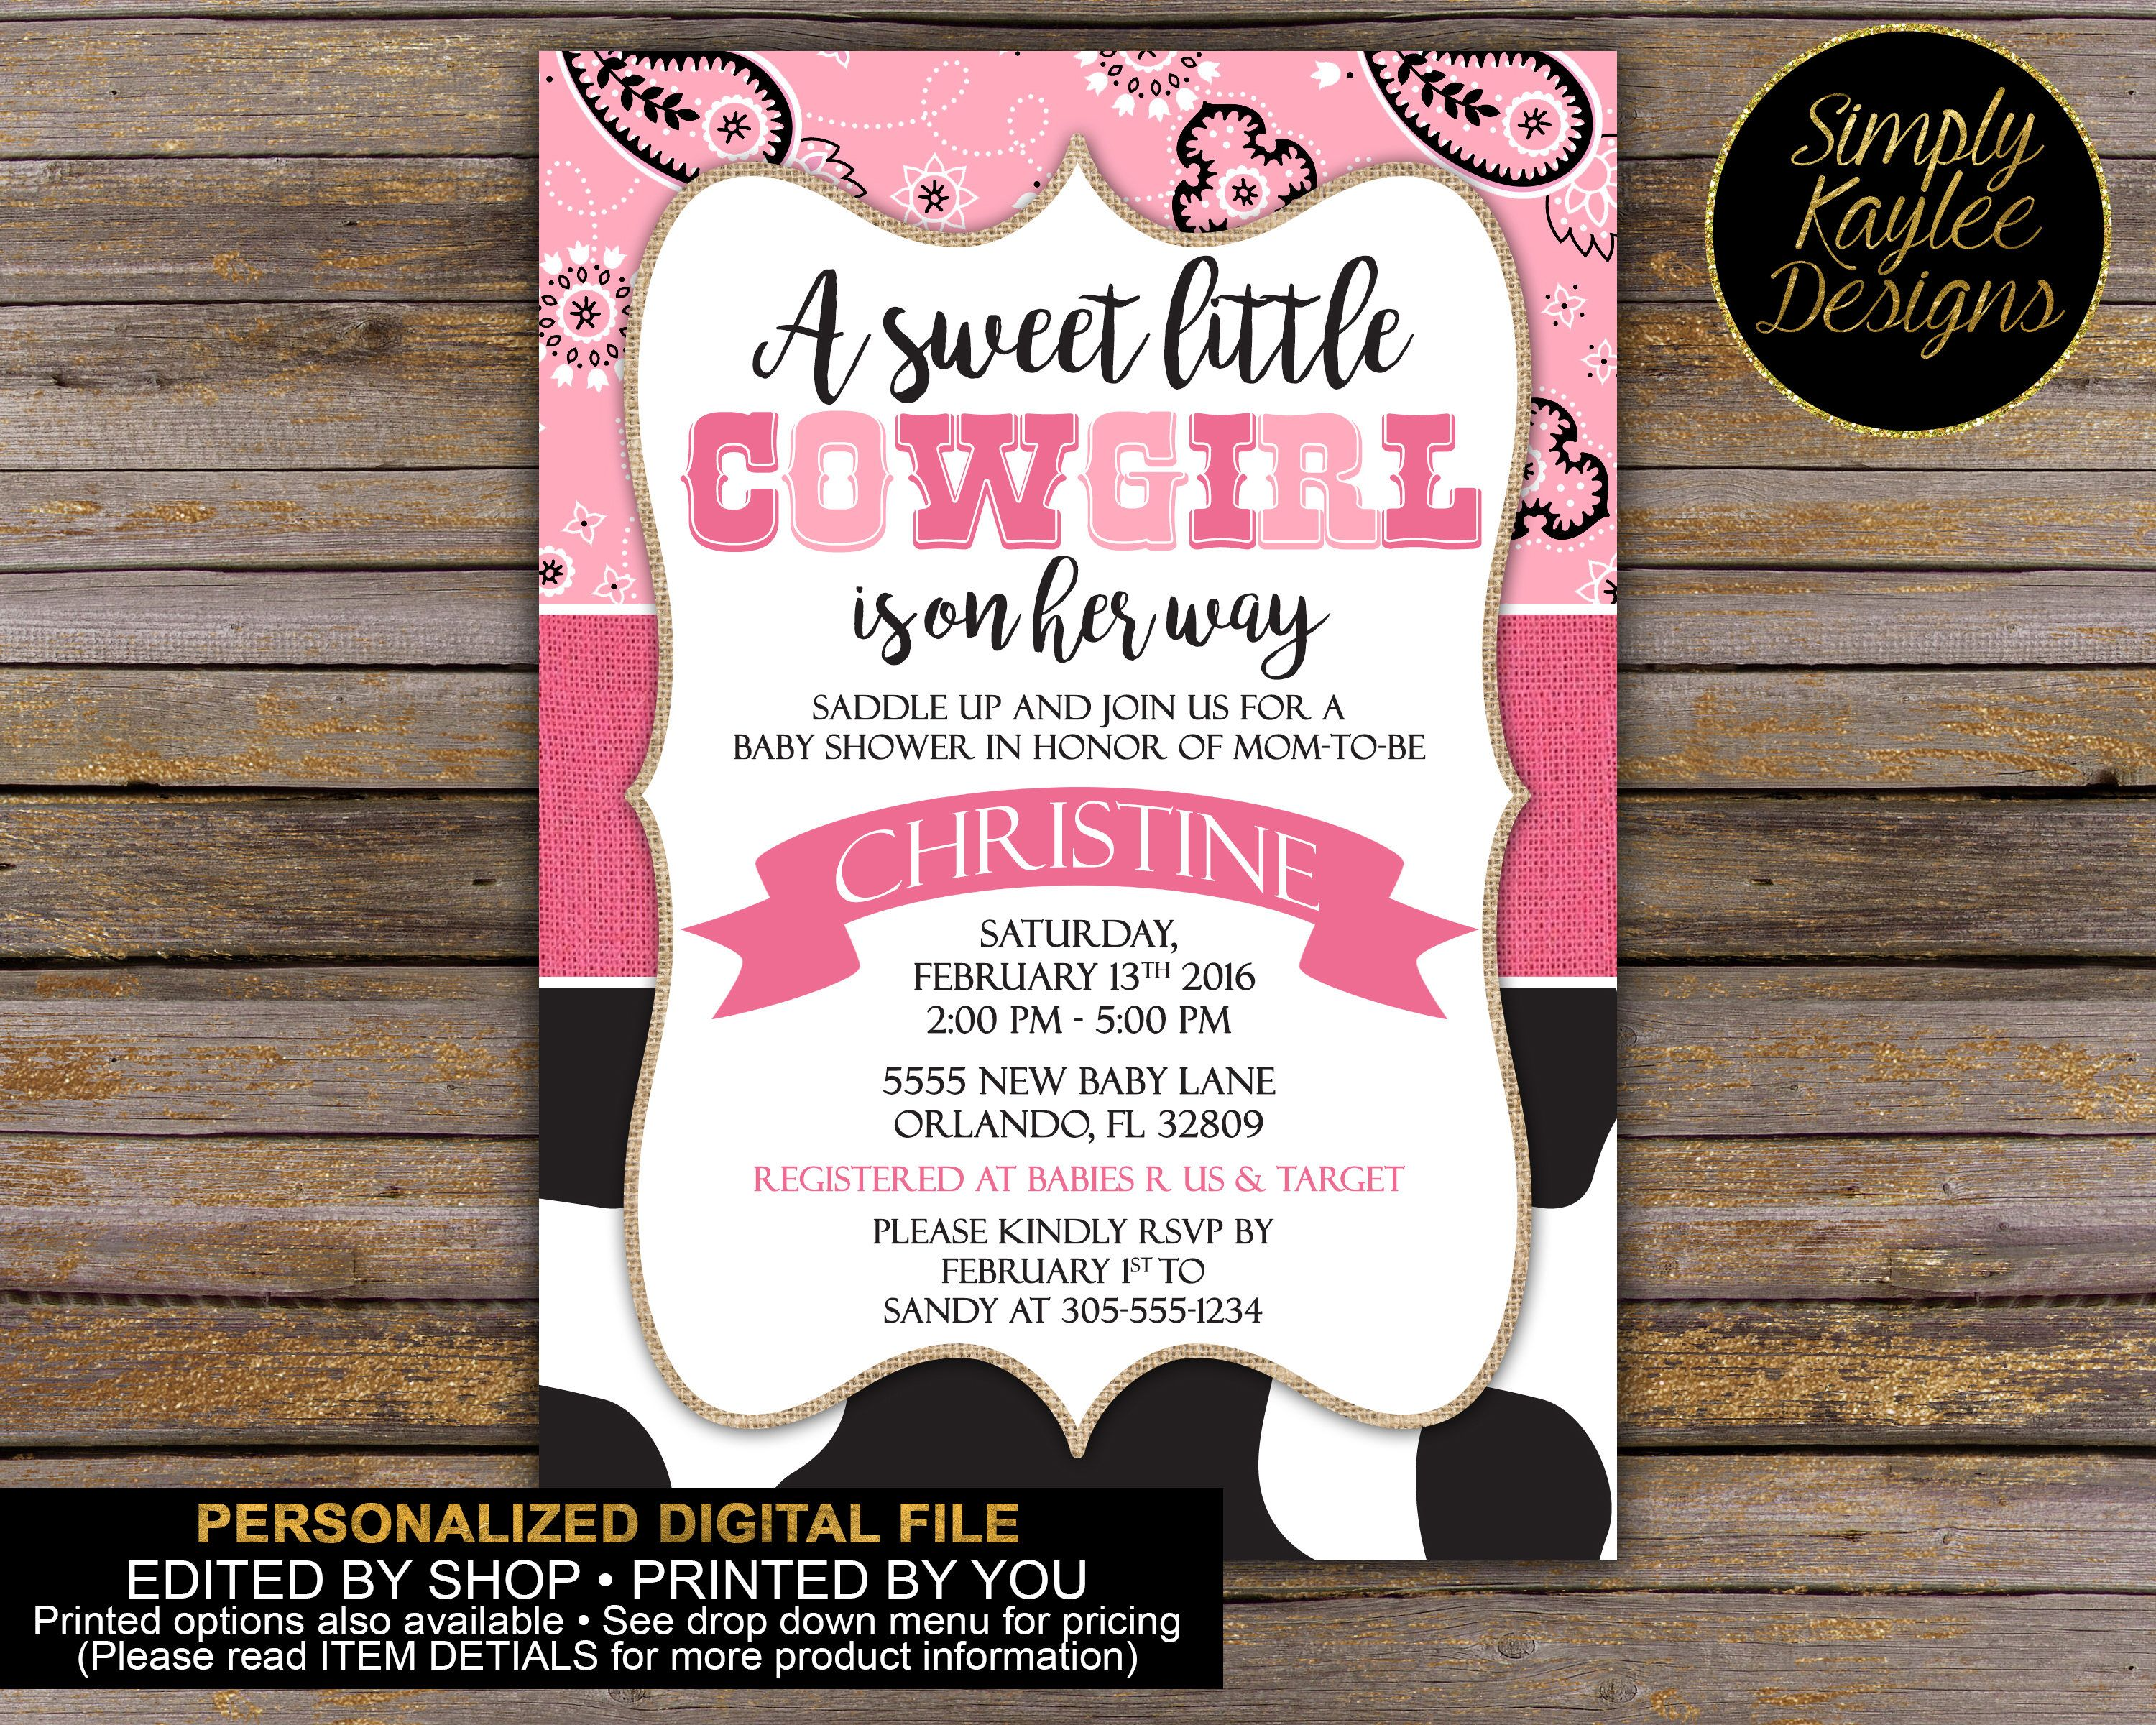 Little Cowgirl Baby Shower Invitation by SimplyKayleeDesigns on Etsy ...